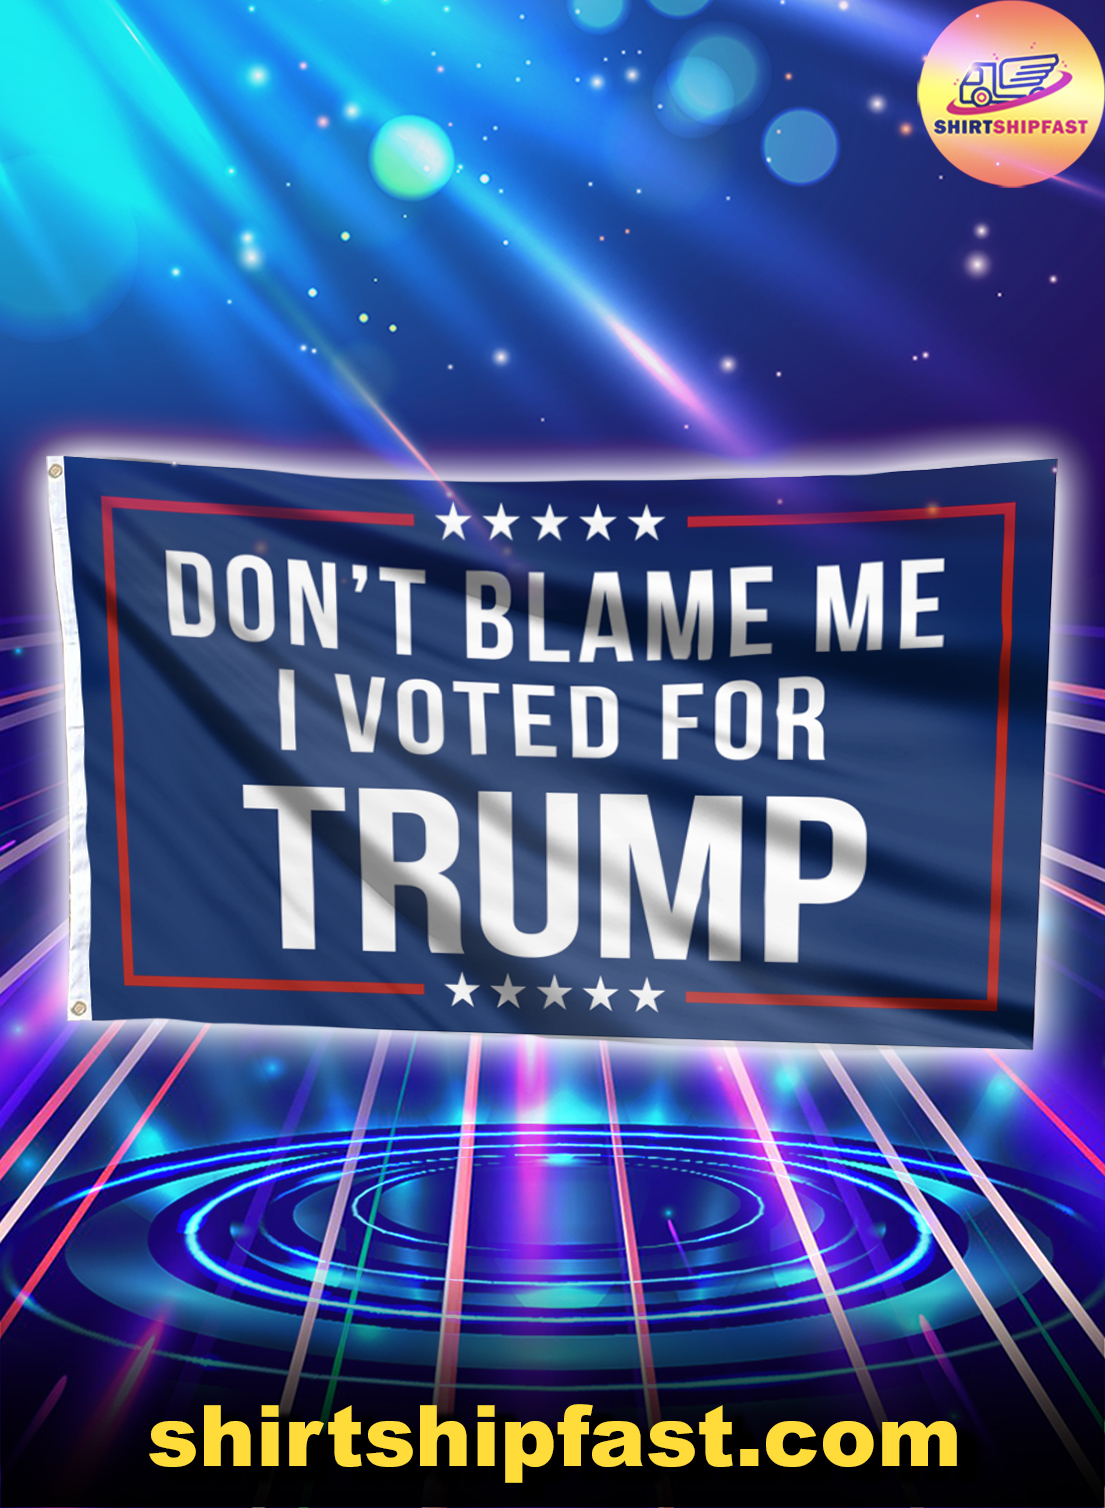 Don't blame me I voted for Trump flag - Picture 1